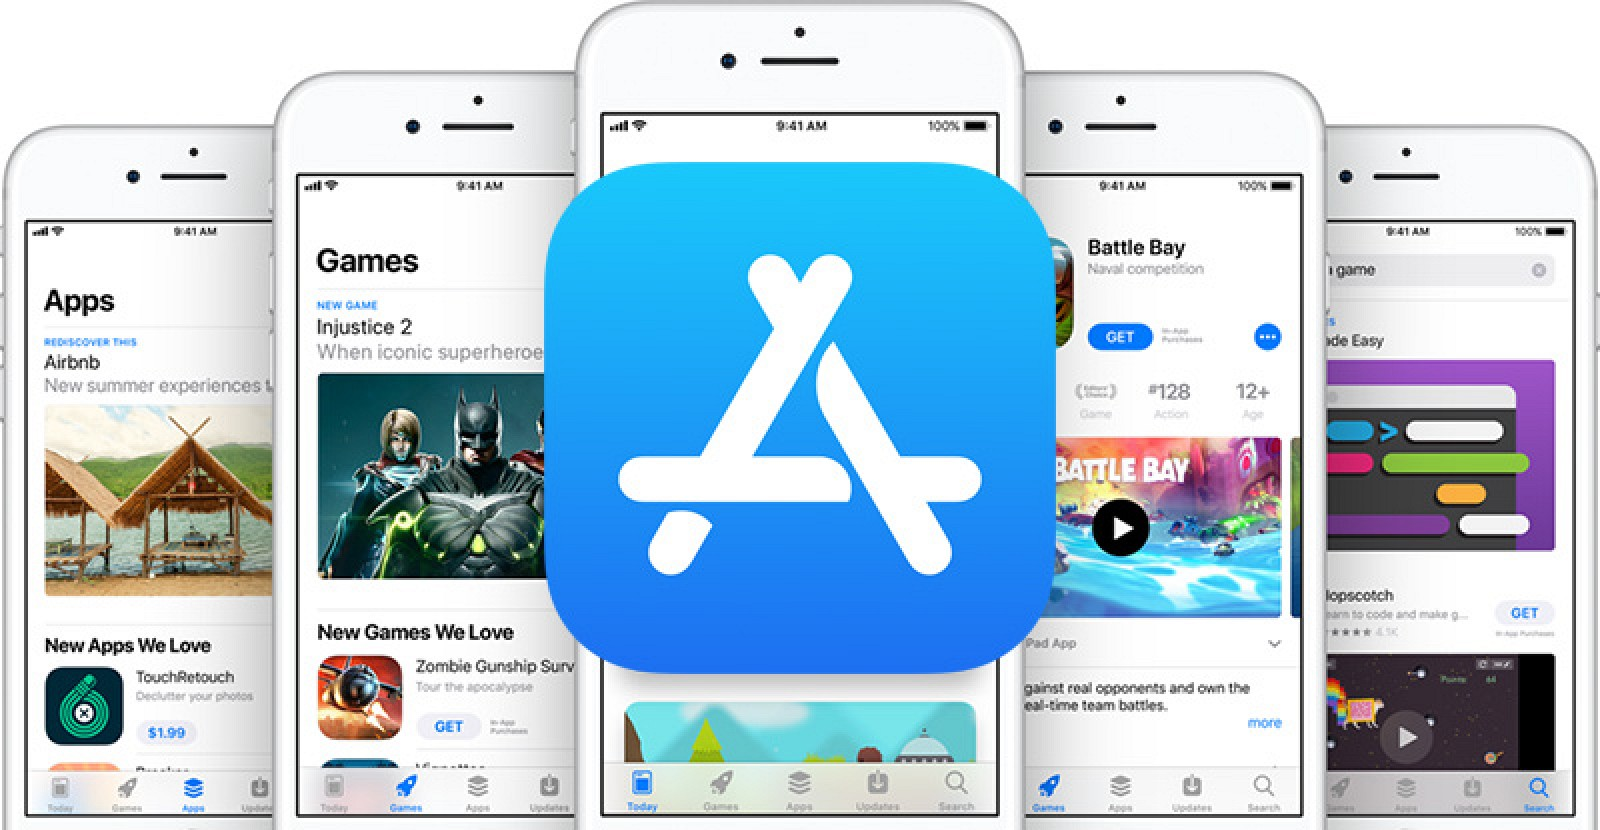 Apple Music, App Store, and Mac App Store Suffering Limited